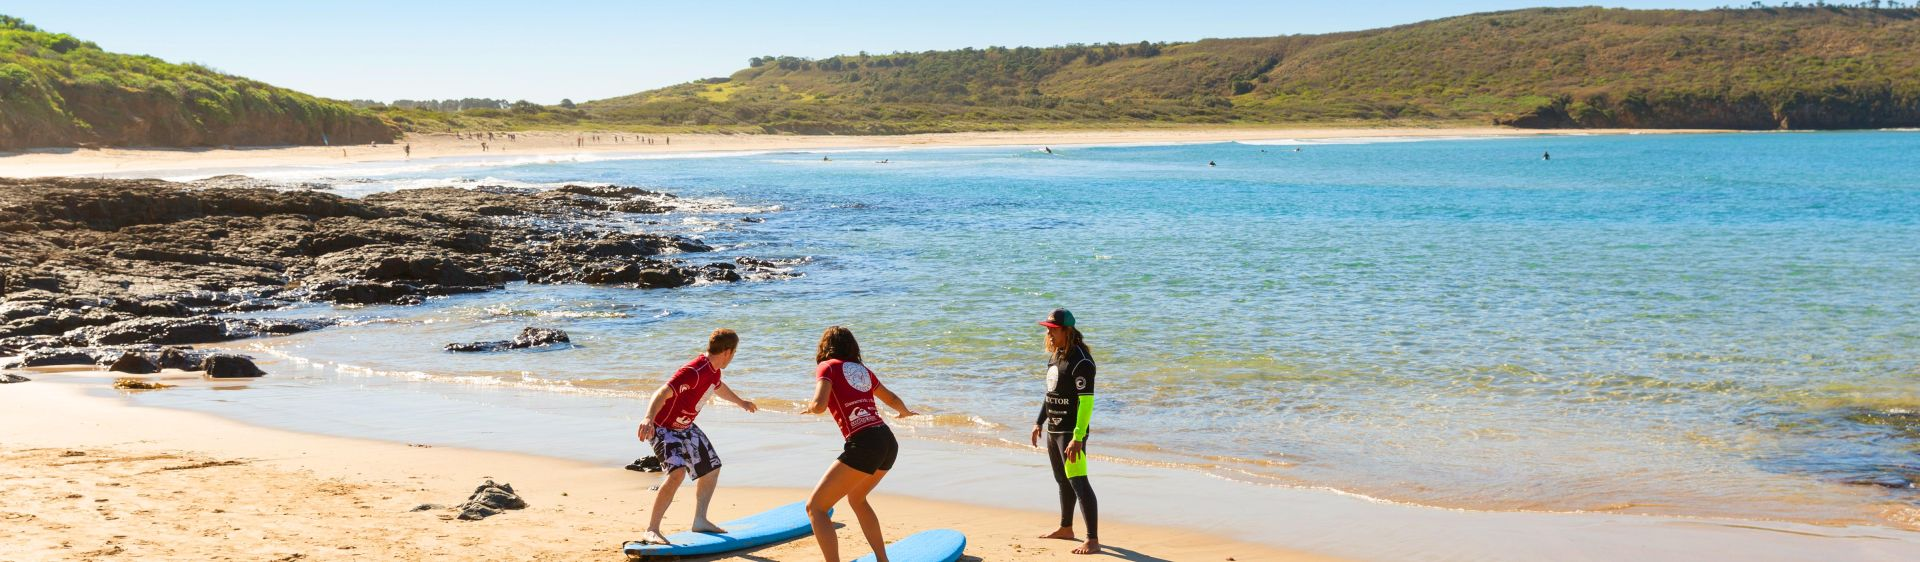 Couple taking a surfing lesson at The Farm, Killalea State Park, South Coast NSW